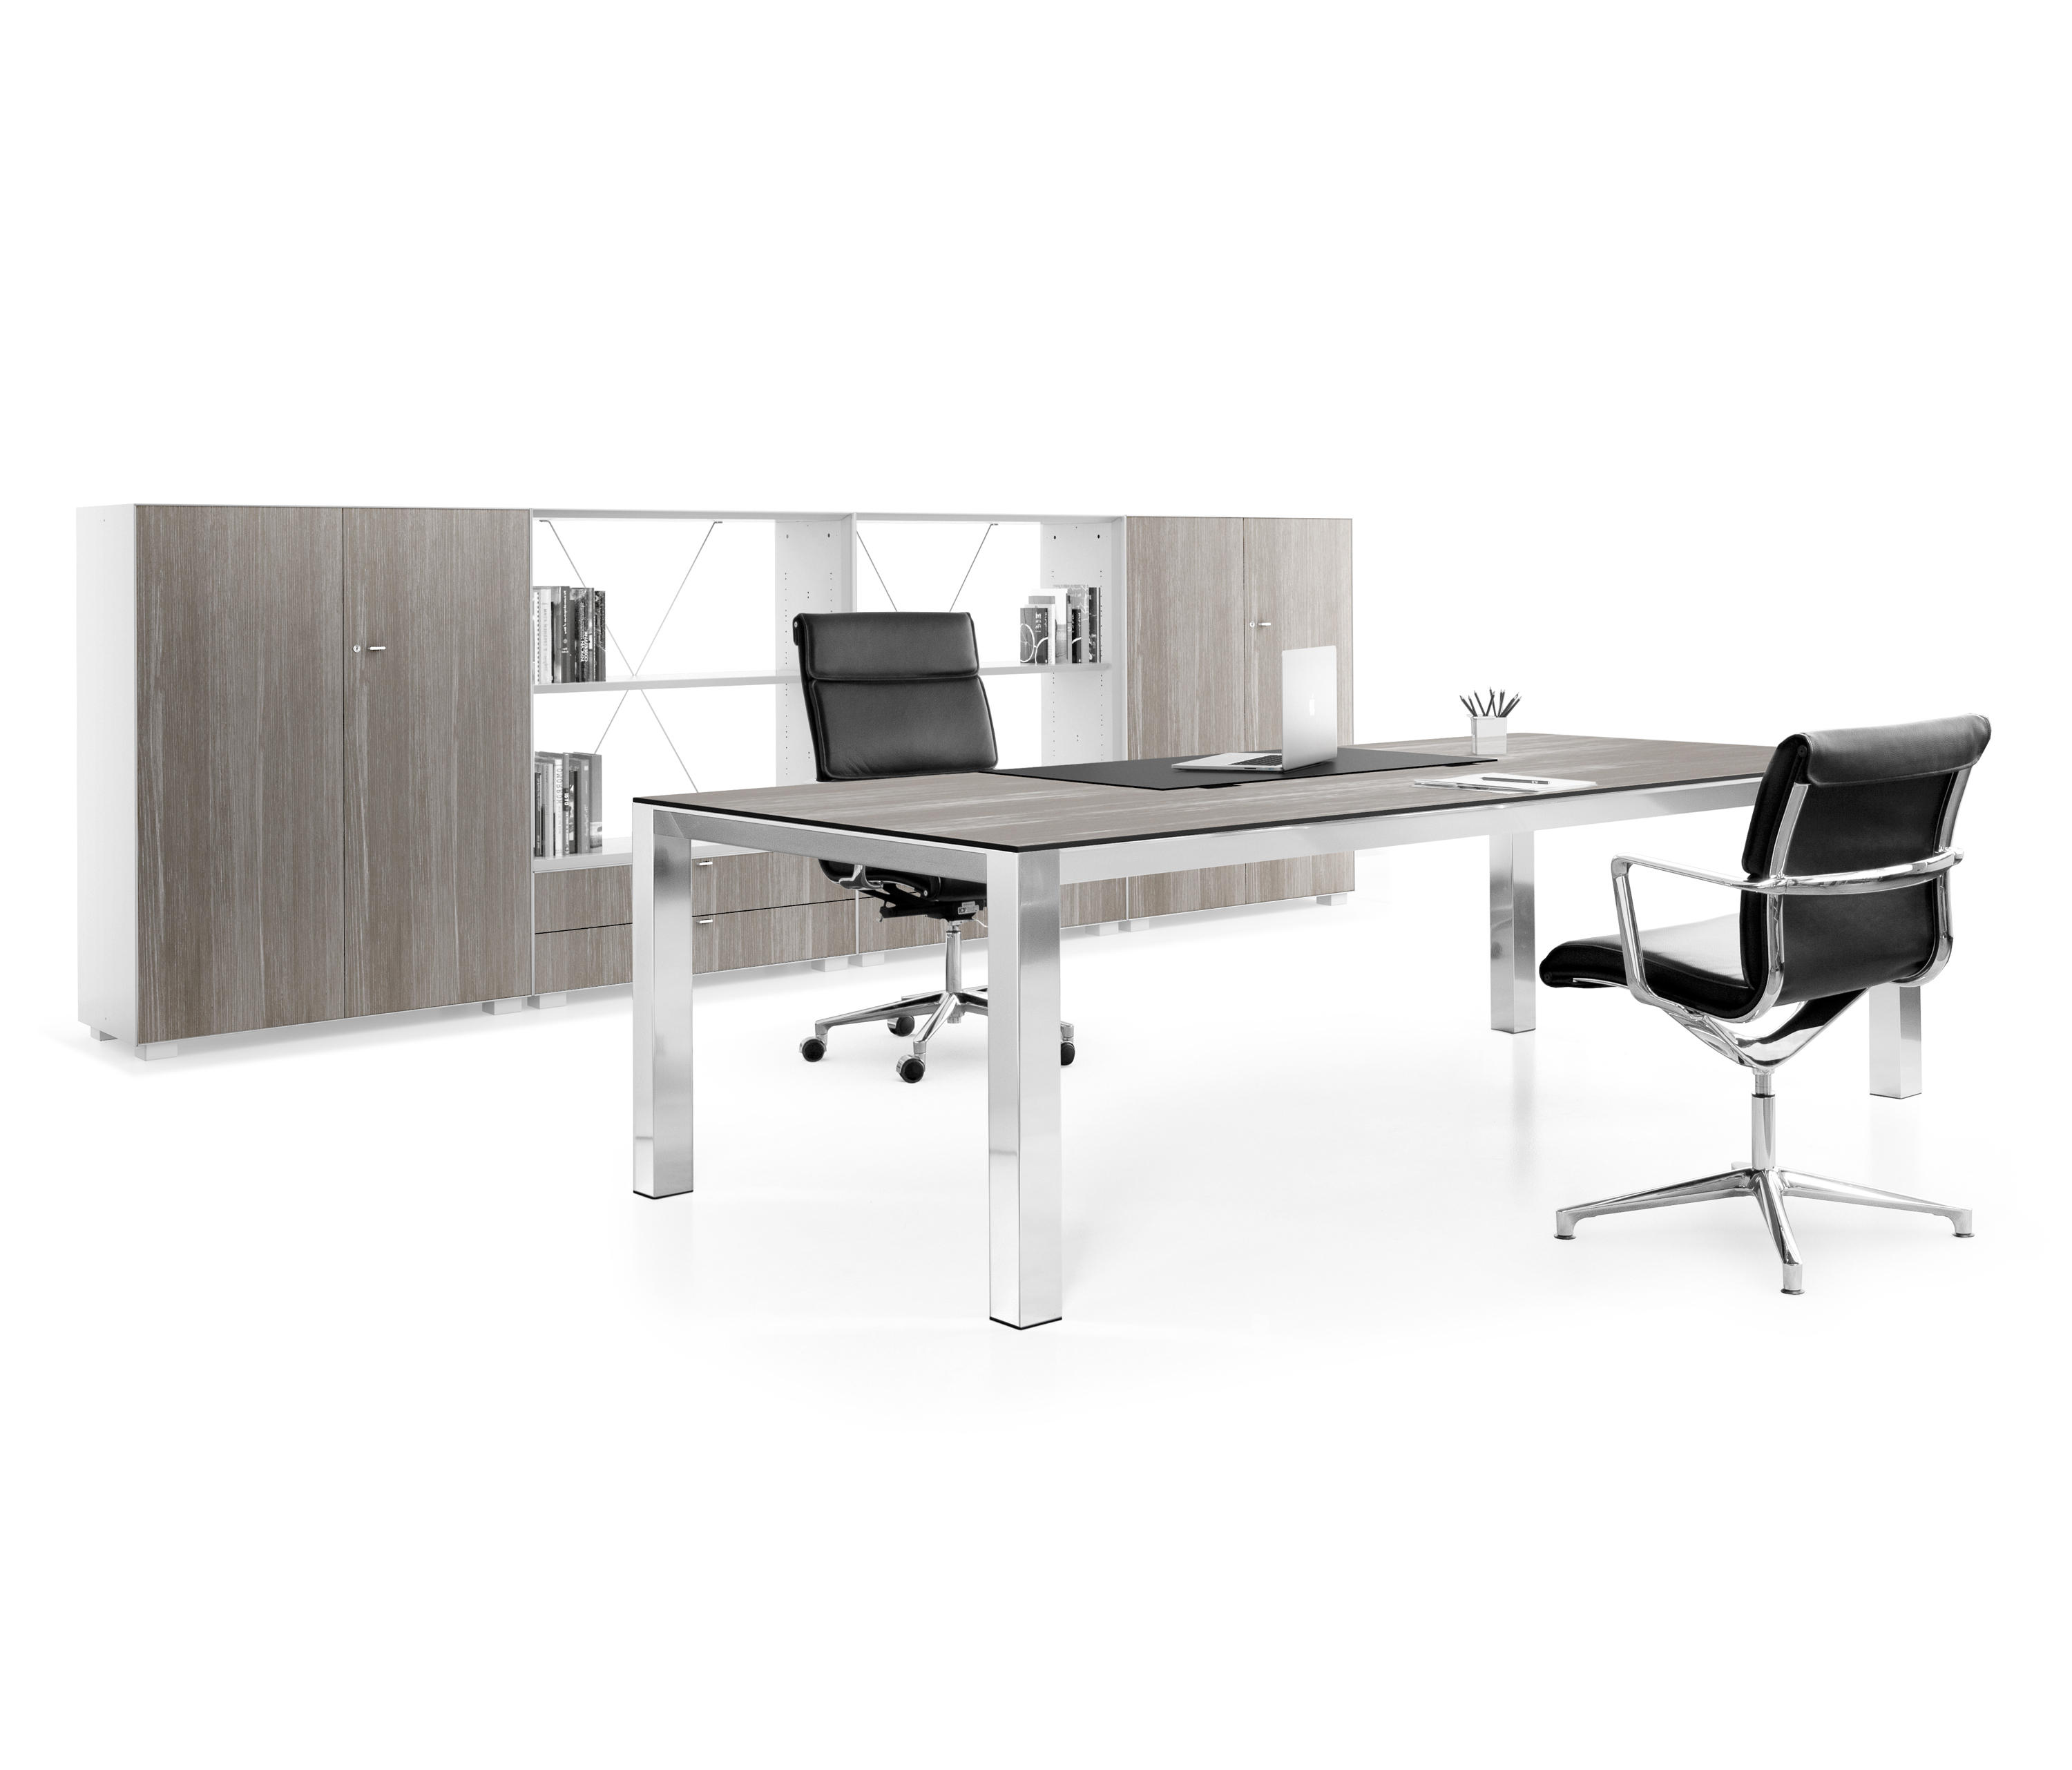 P80 - Desks from ICF | Architonic